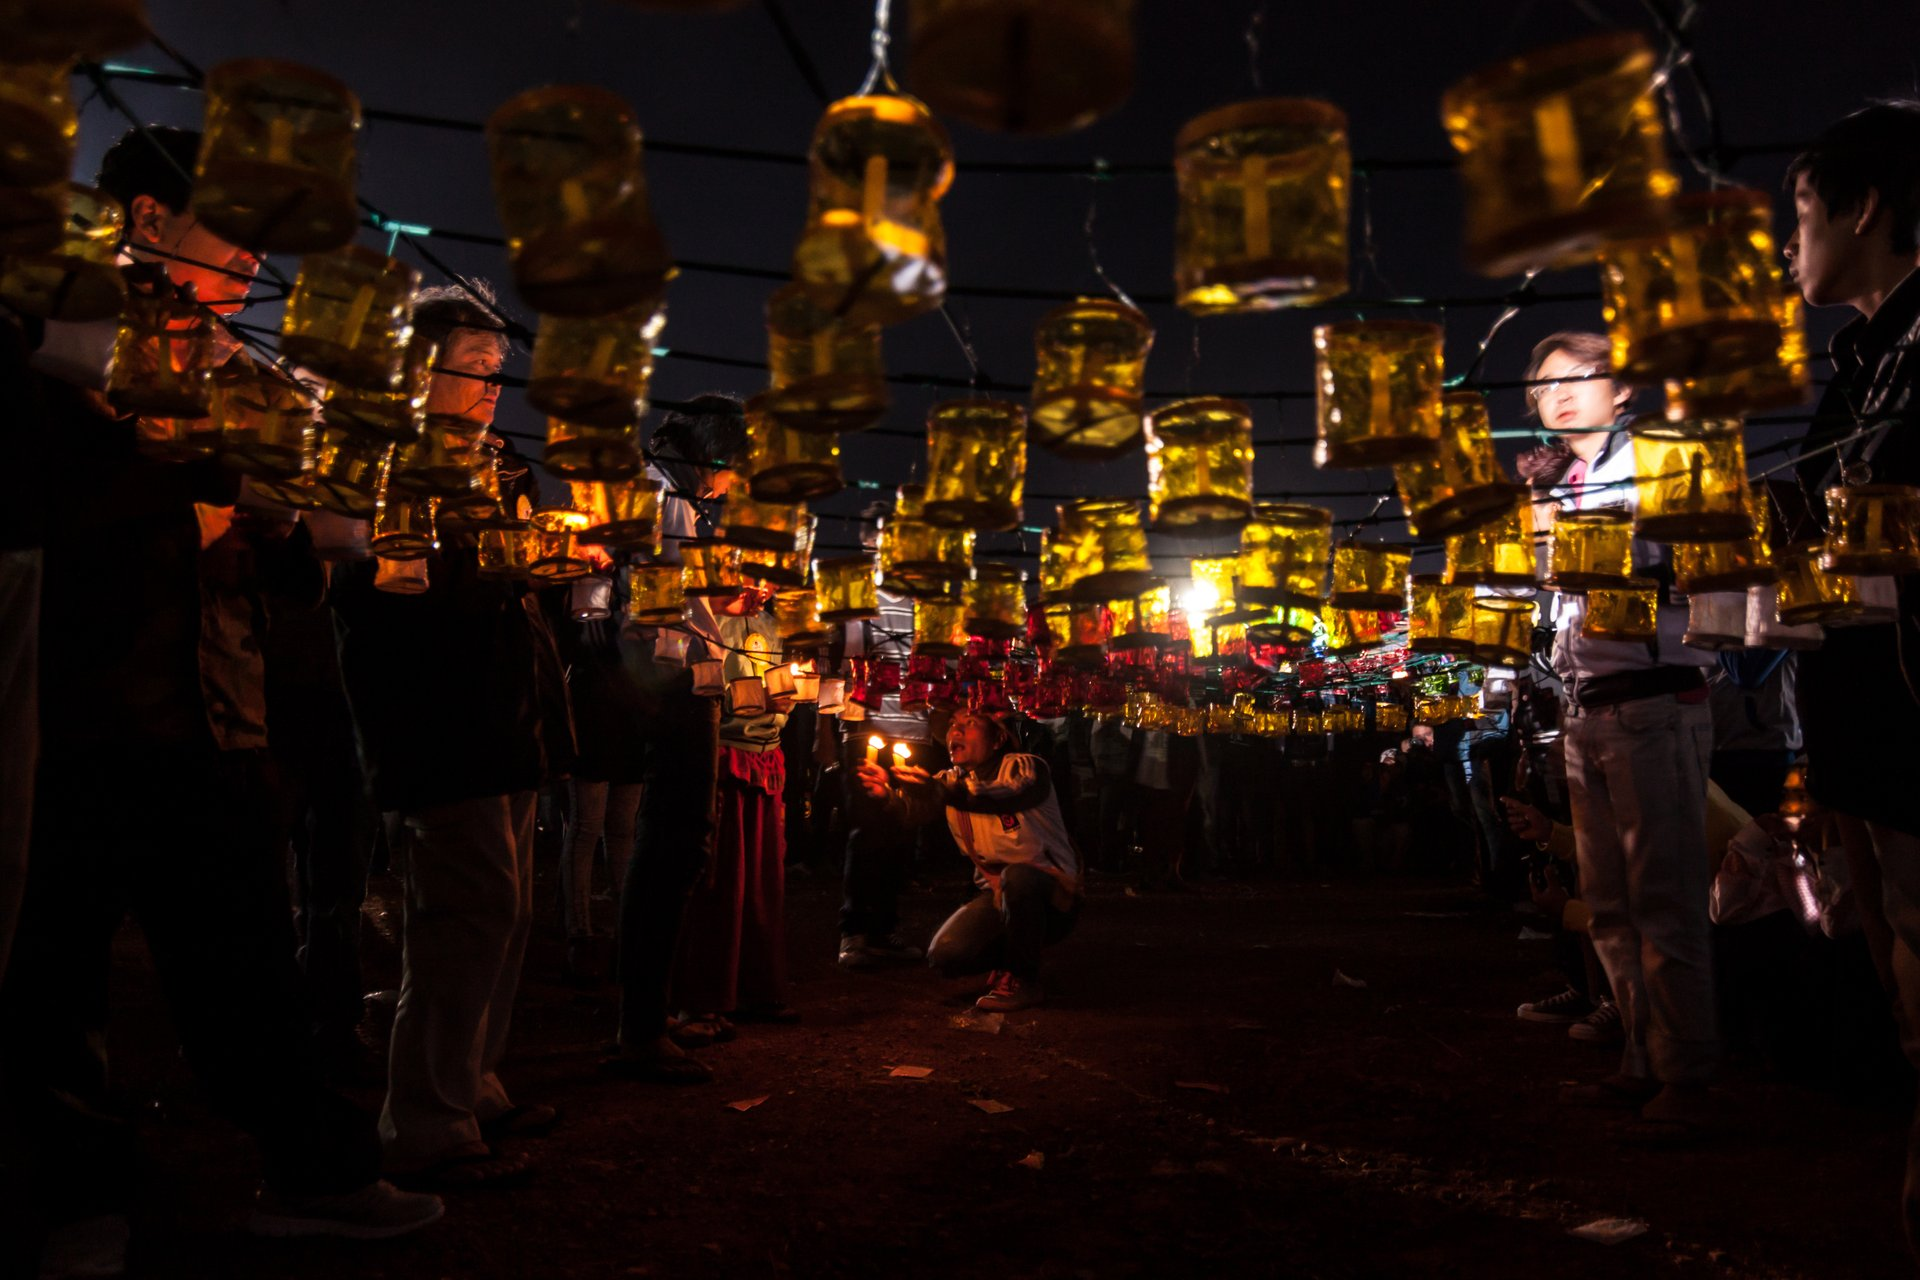 Tazaungdaing Light Festival in Myanmar 2020 - Best Time